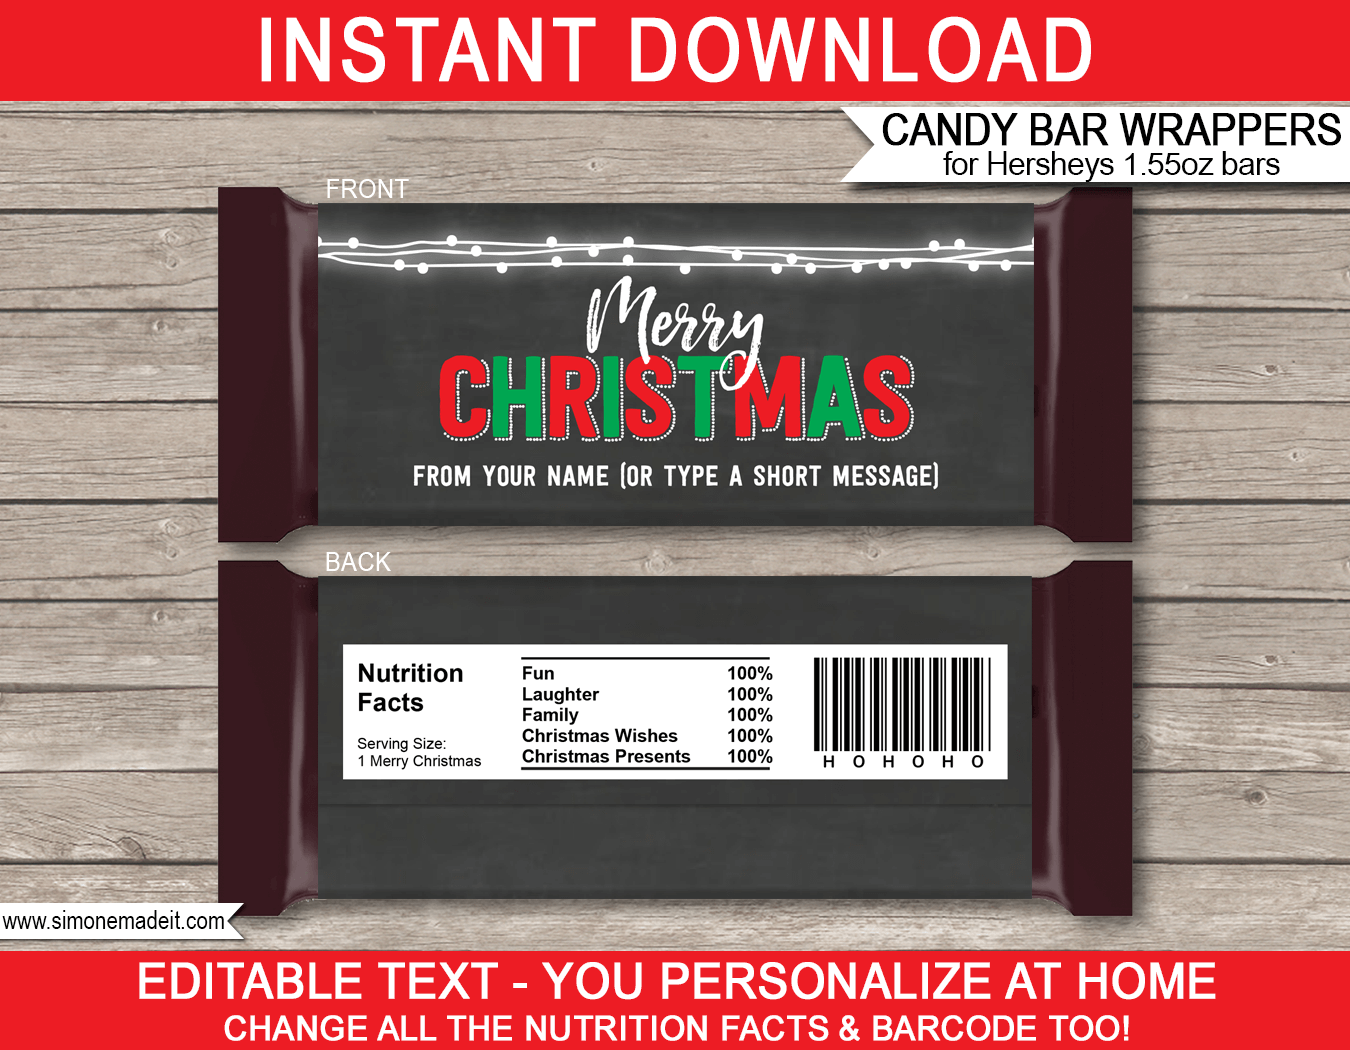 Christmas Chalkboard Candy Bar Wrappers | Hershey 1.55oz Milk Chocolate | Personalized Candy Bars | Editable Template | INSTANT DOWNLOAD $3.00 via simonemadeit.com